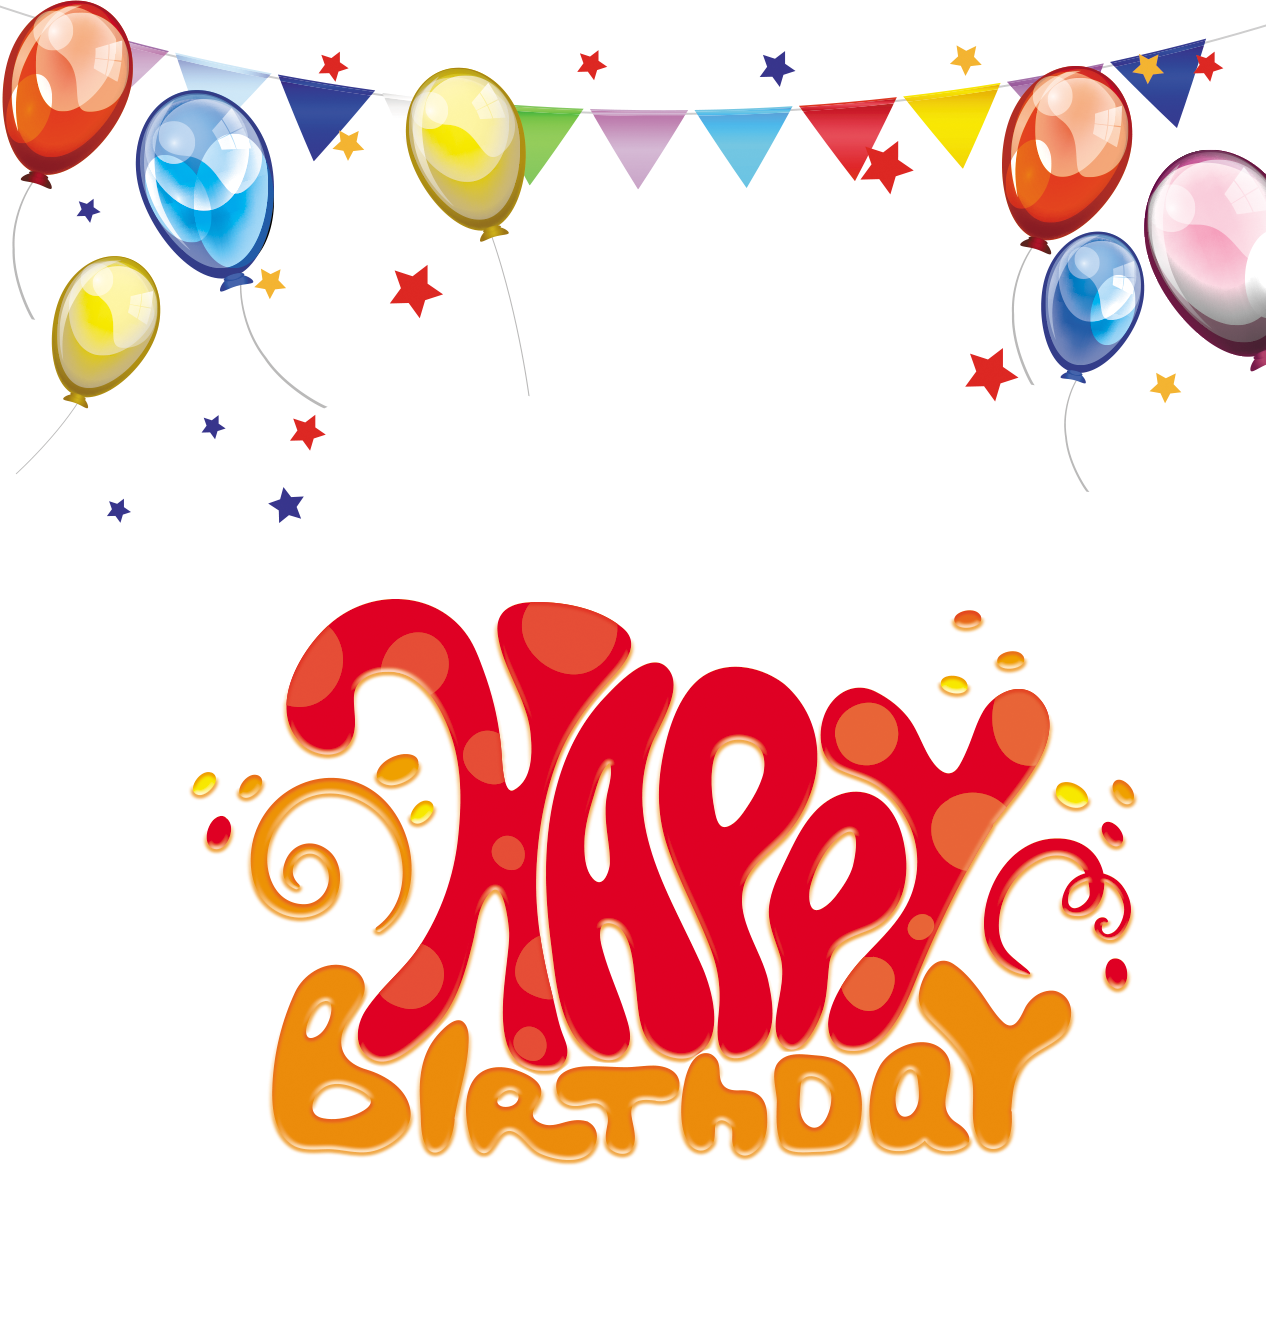 Happy 21st birthday kyle clipart transparent download Pin by pngsector on Happy Birthday Transparent PNG image & Clipart ... transparent download